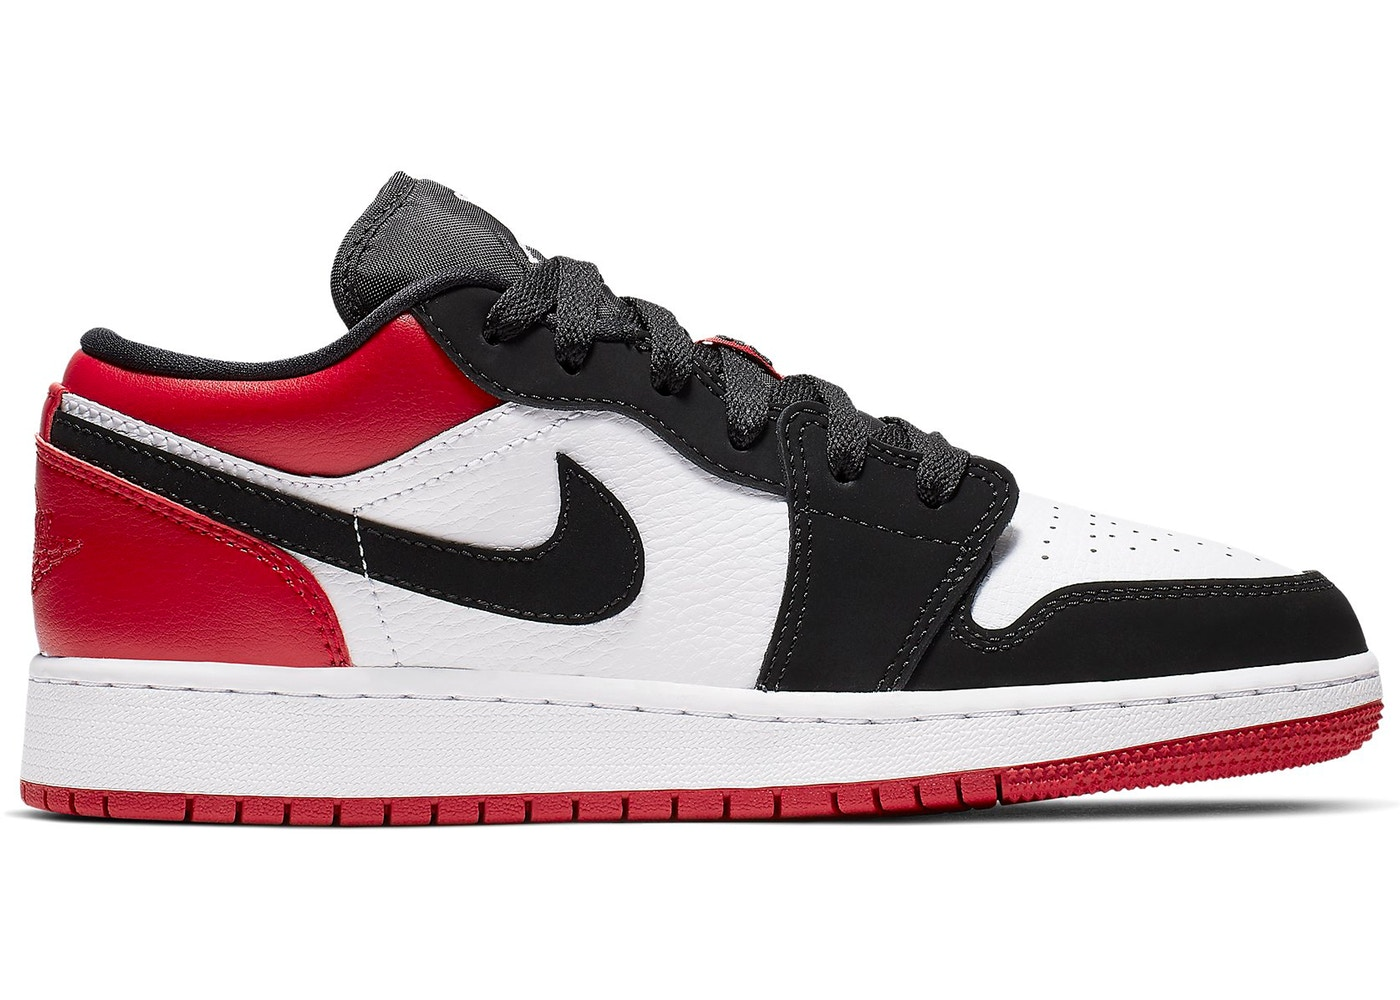 f880b66aa4c84c Sell. or Ask. Size  5Y. View All Bids. Jordan 1 Low Black Toe ...